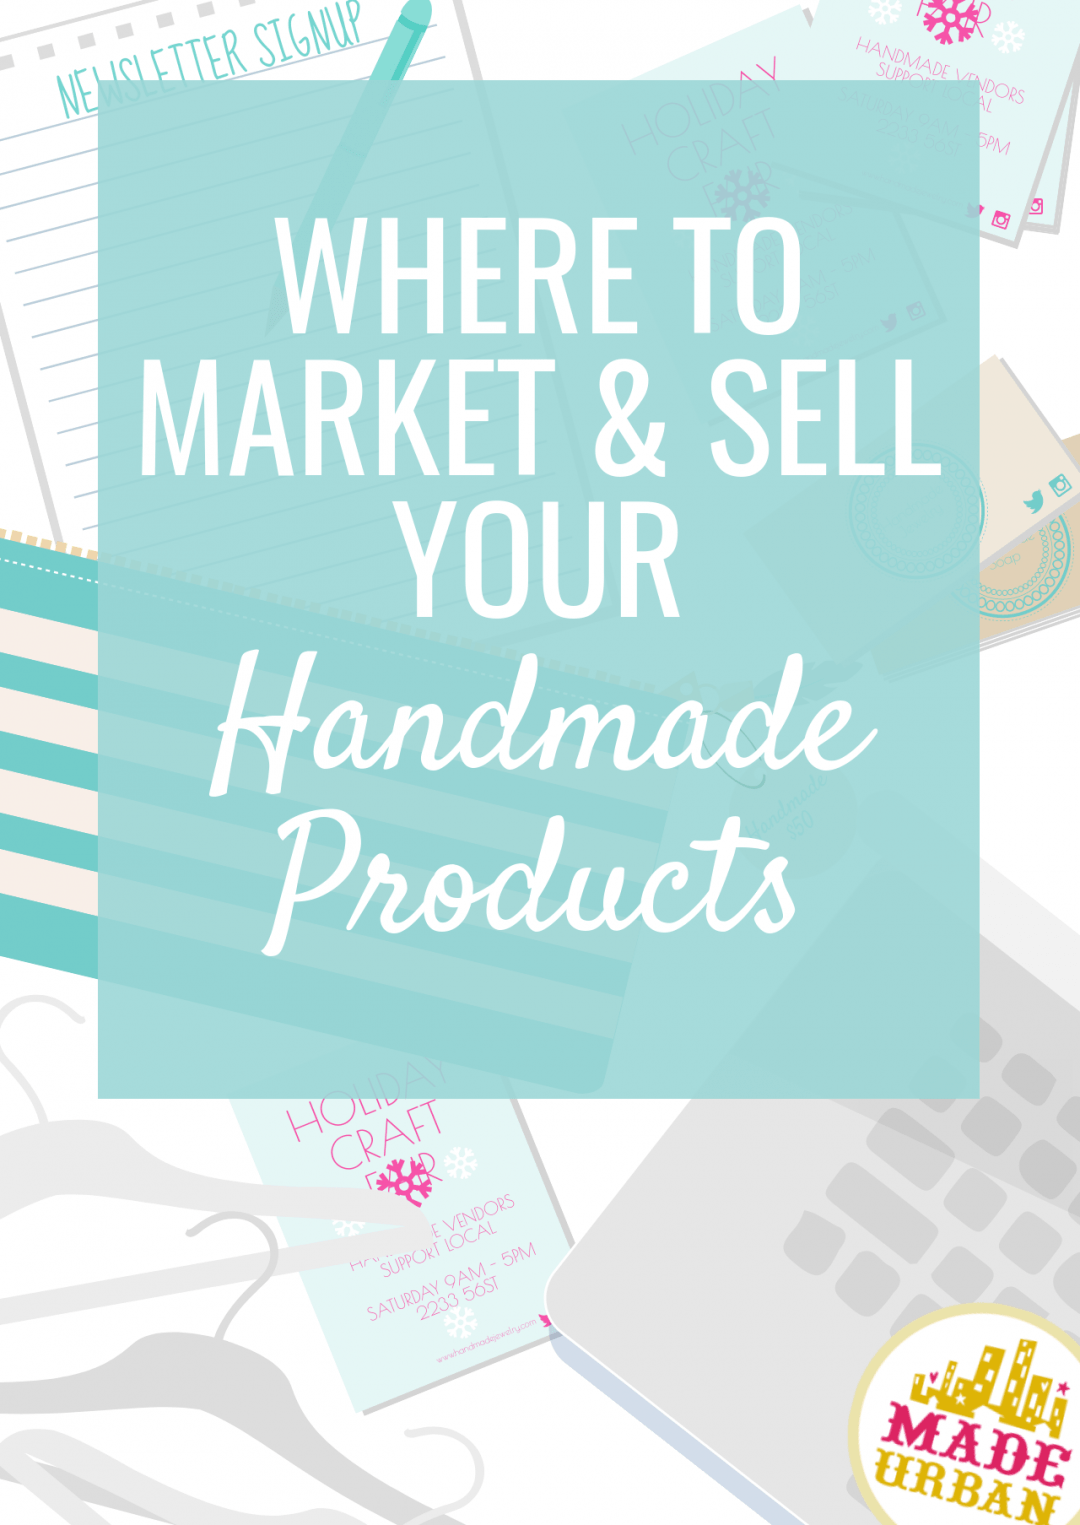 Where to Market & Sell your Handmade Products